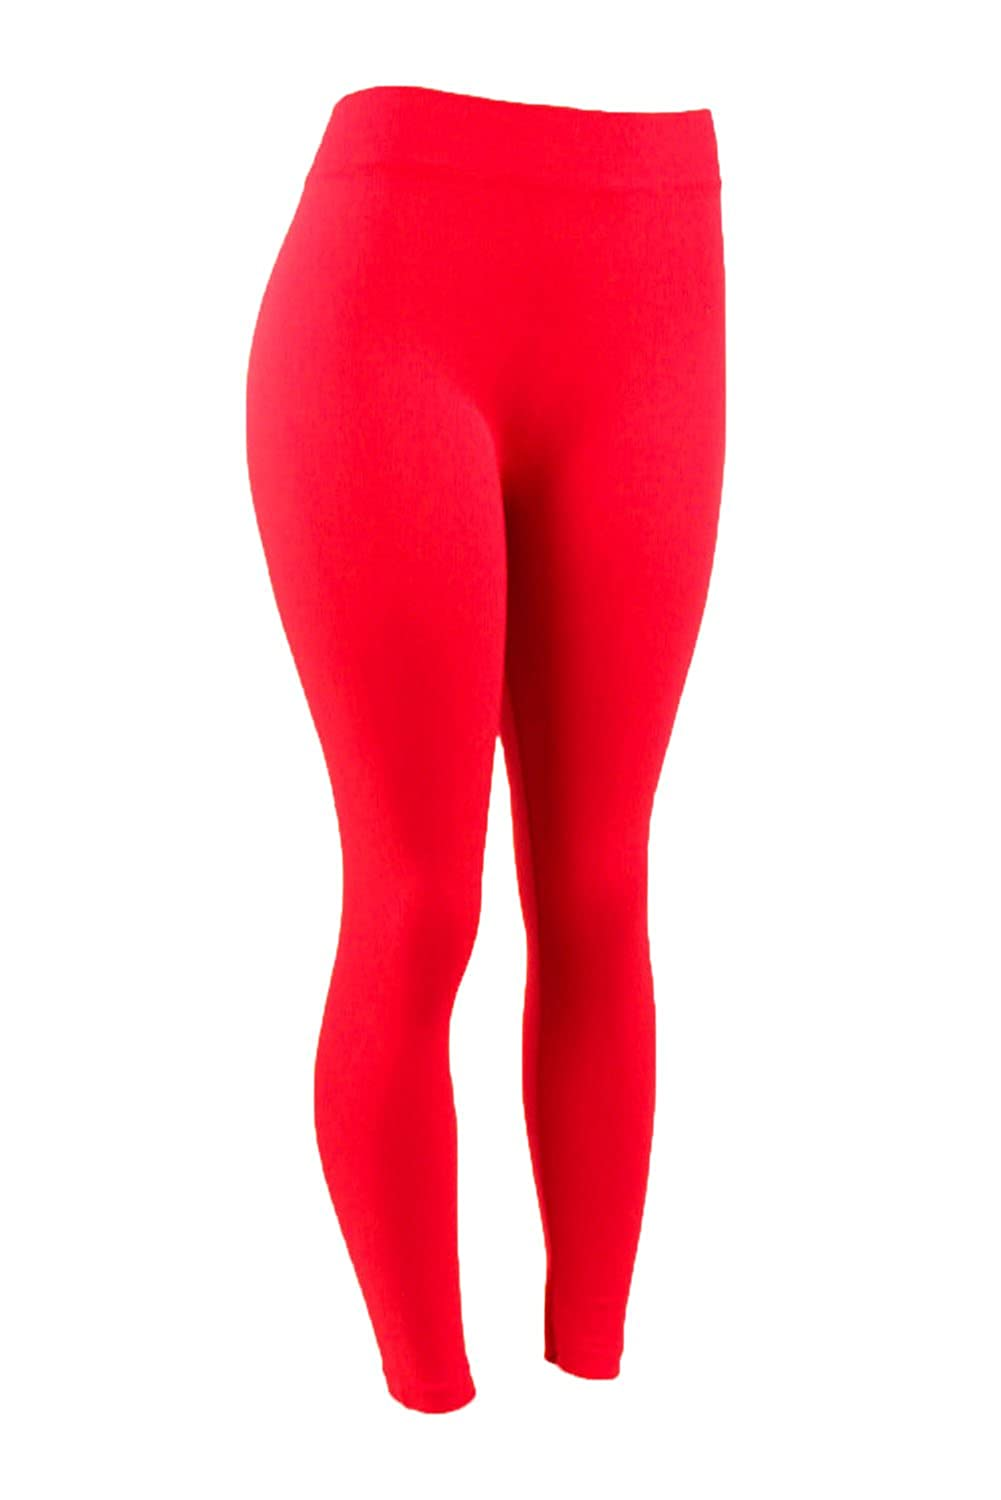 42dd7b60f7567 Jiuyu Women's Plus Size Basic Solid Color Leggings-One Size-Black at Amazon  Women's Clothing store: